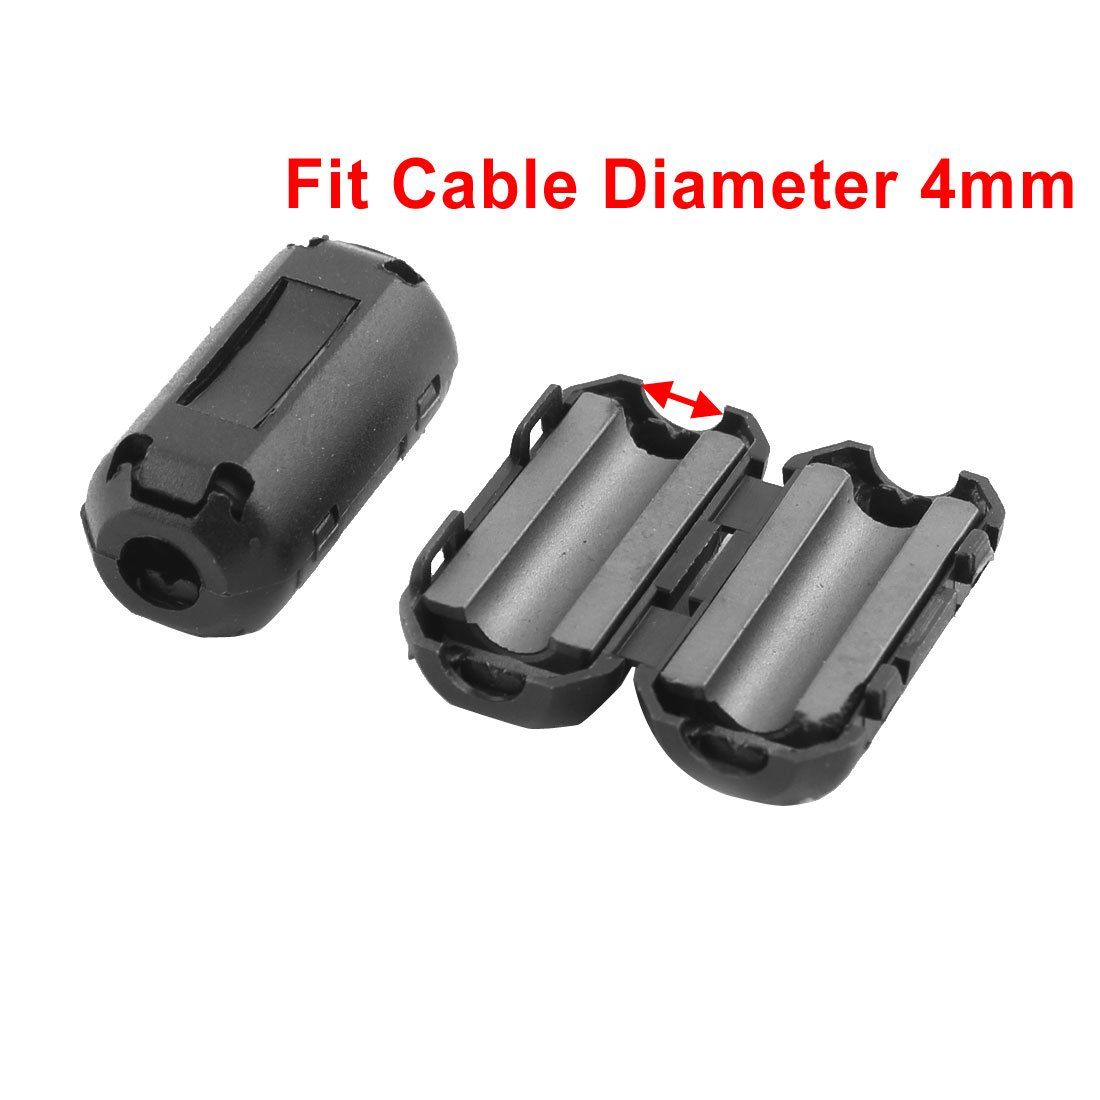 Uxcell a11112800ux0062 Clip on EMI RFI Noise Ferrite Core Filter for 4 mm Cable